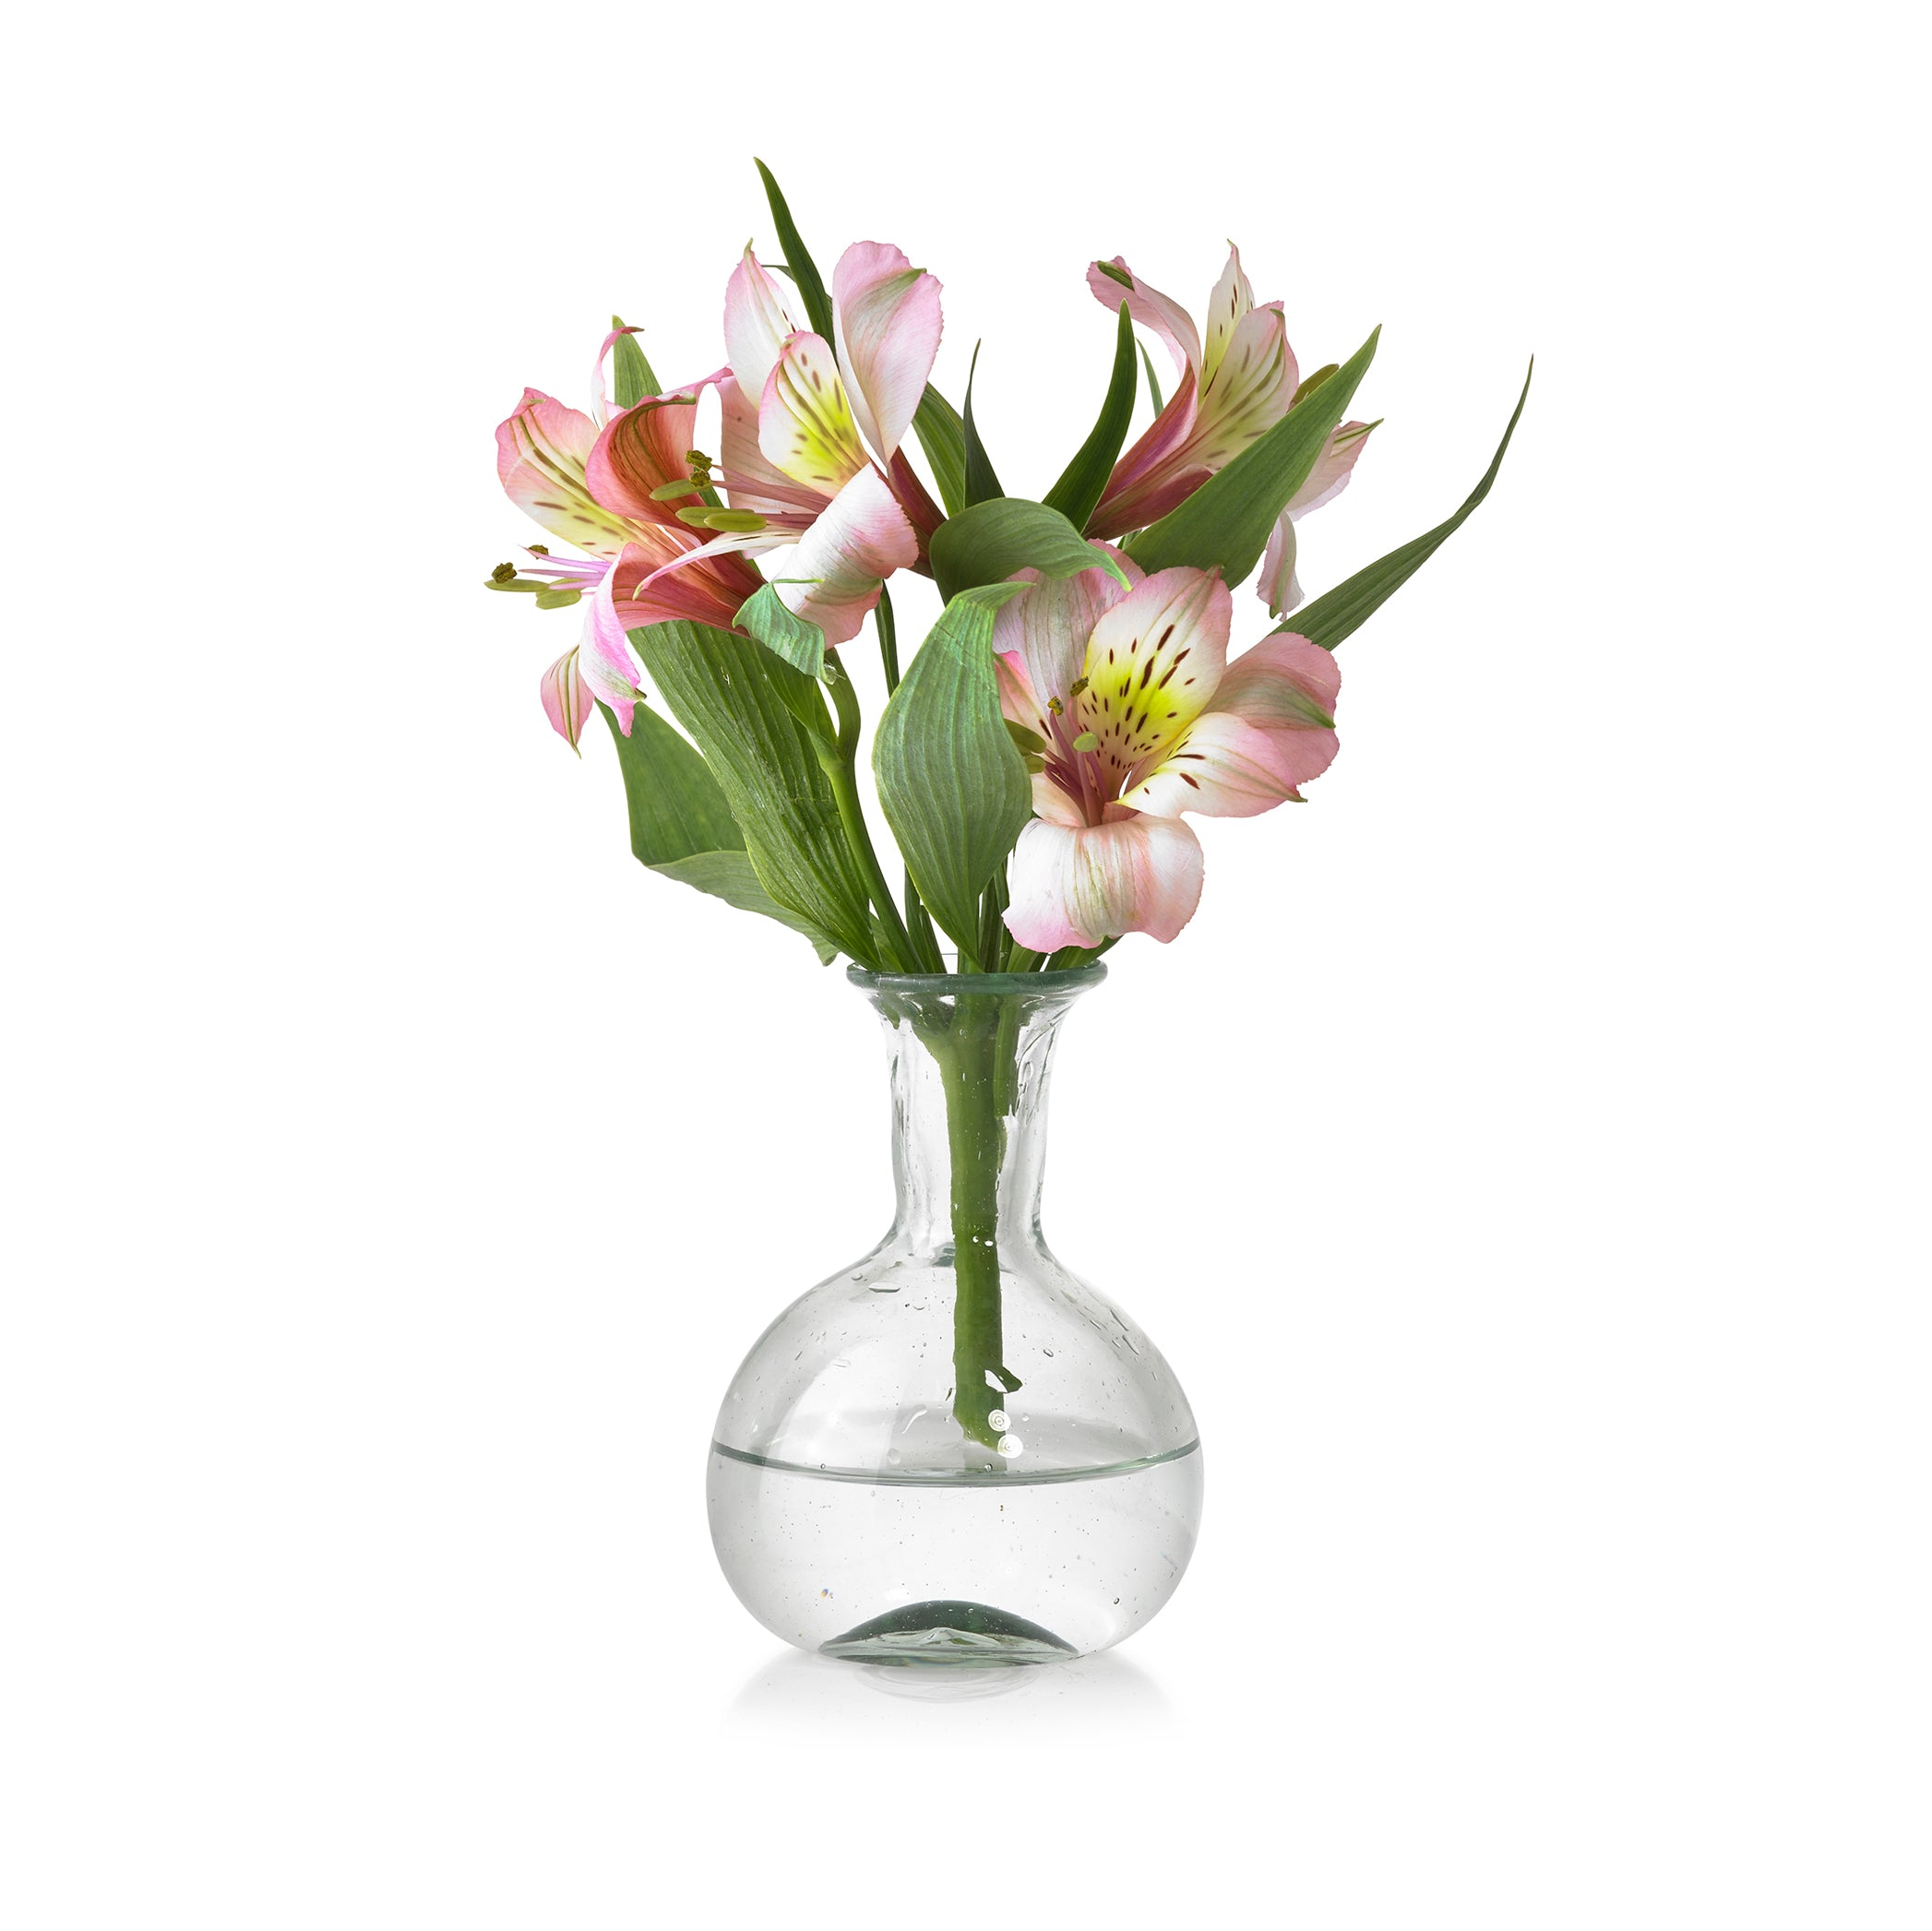 Handblown Small Round Bud Vase